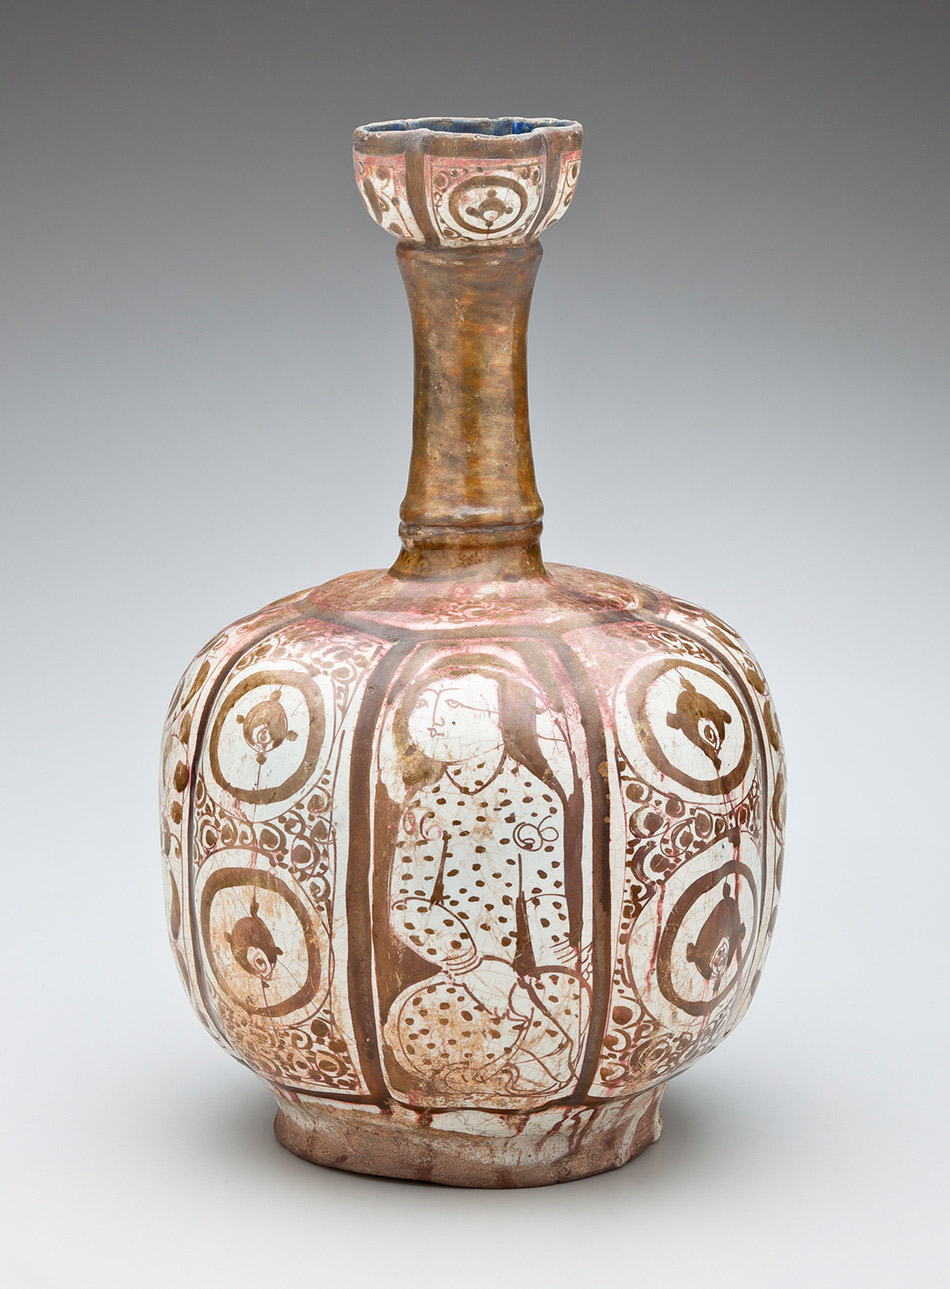 2008.1_Unknown,-Luster-Lobed,-Molded-Rim-Bottle-with-Figural,-Geometric,-Calligraphic-and-Floral-Motifs_950w